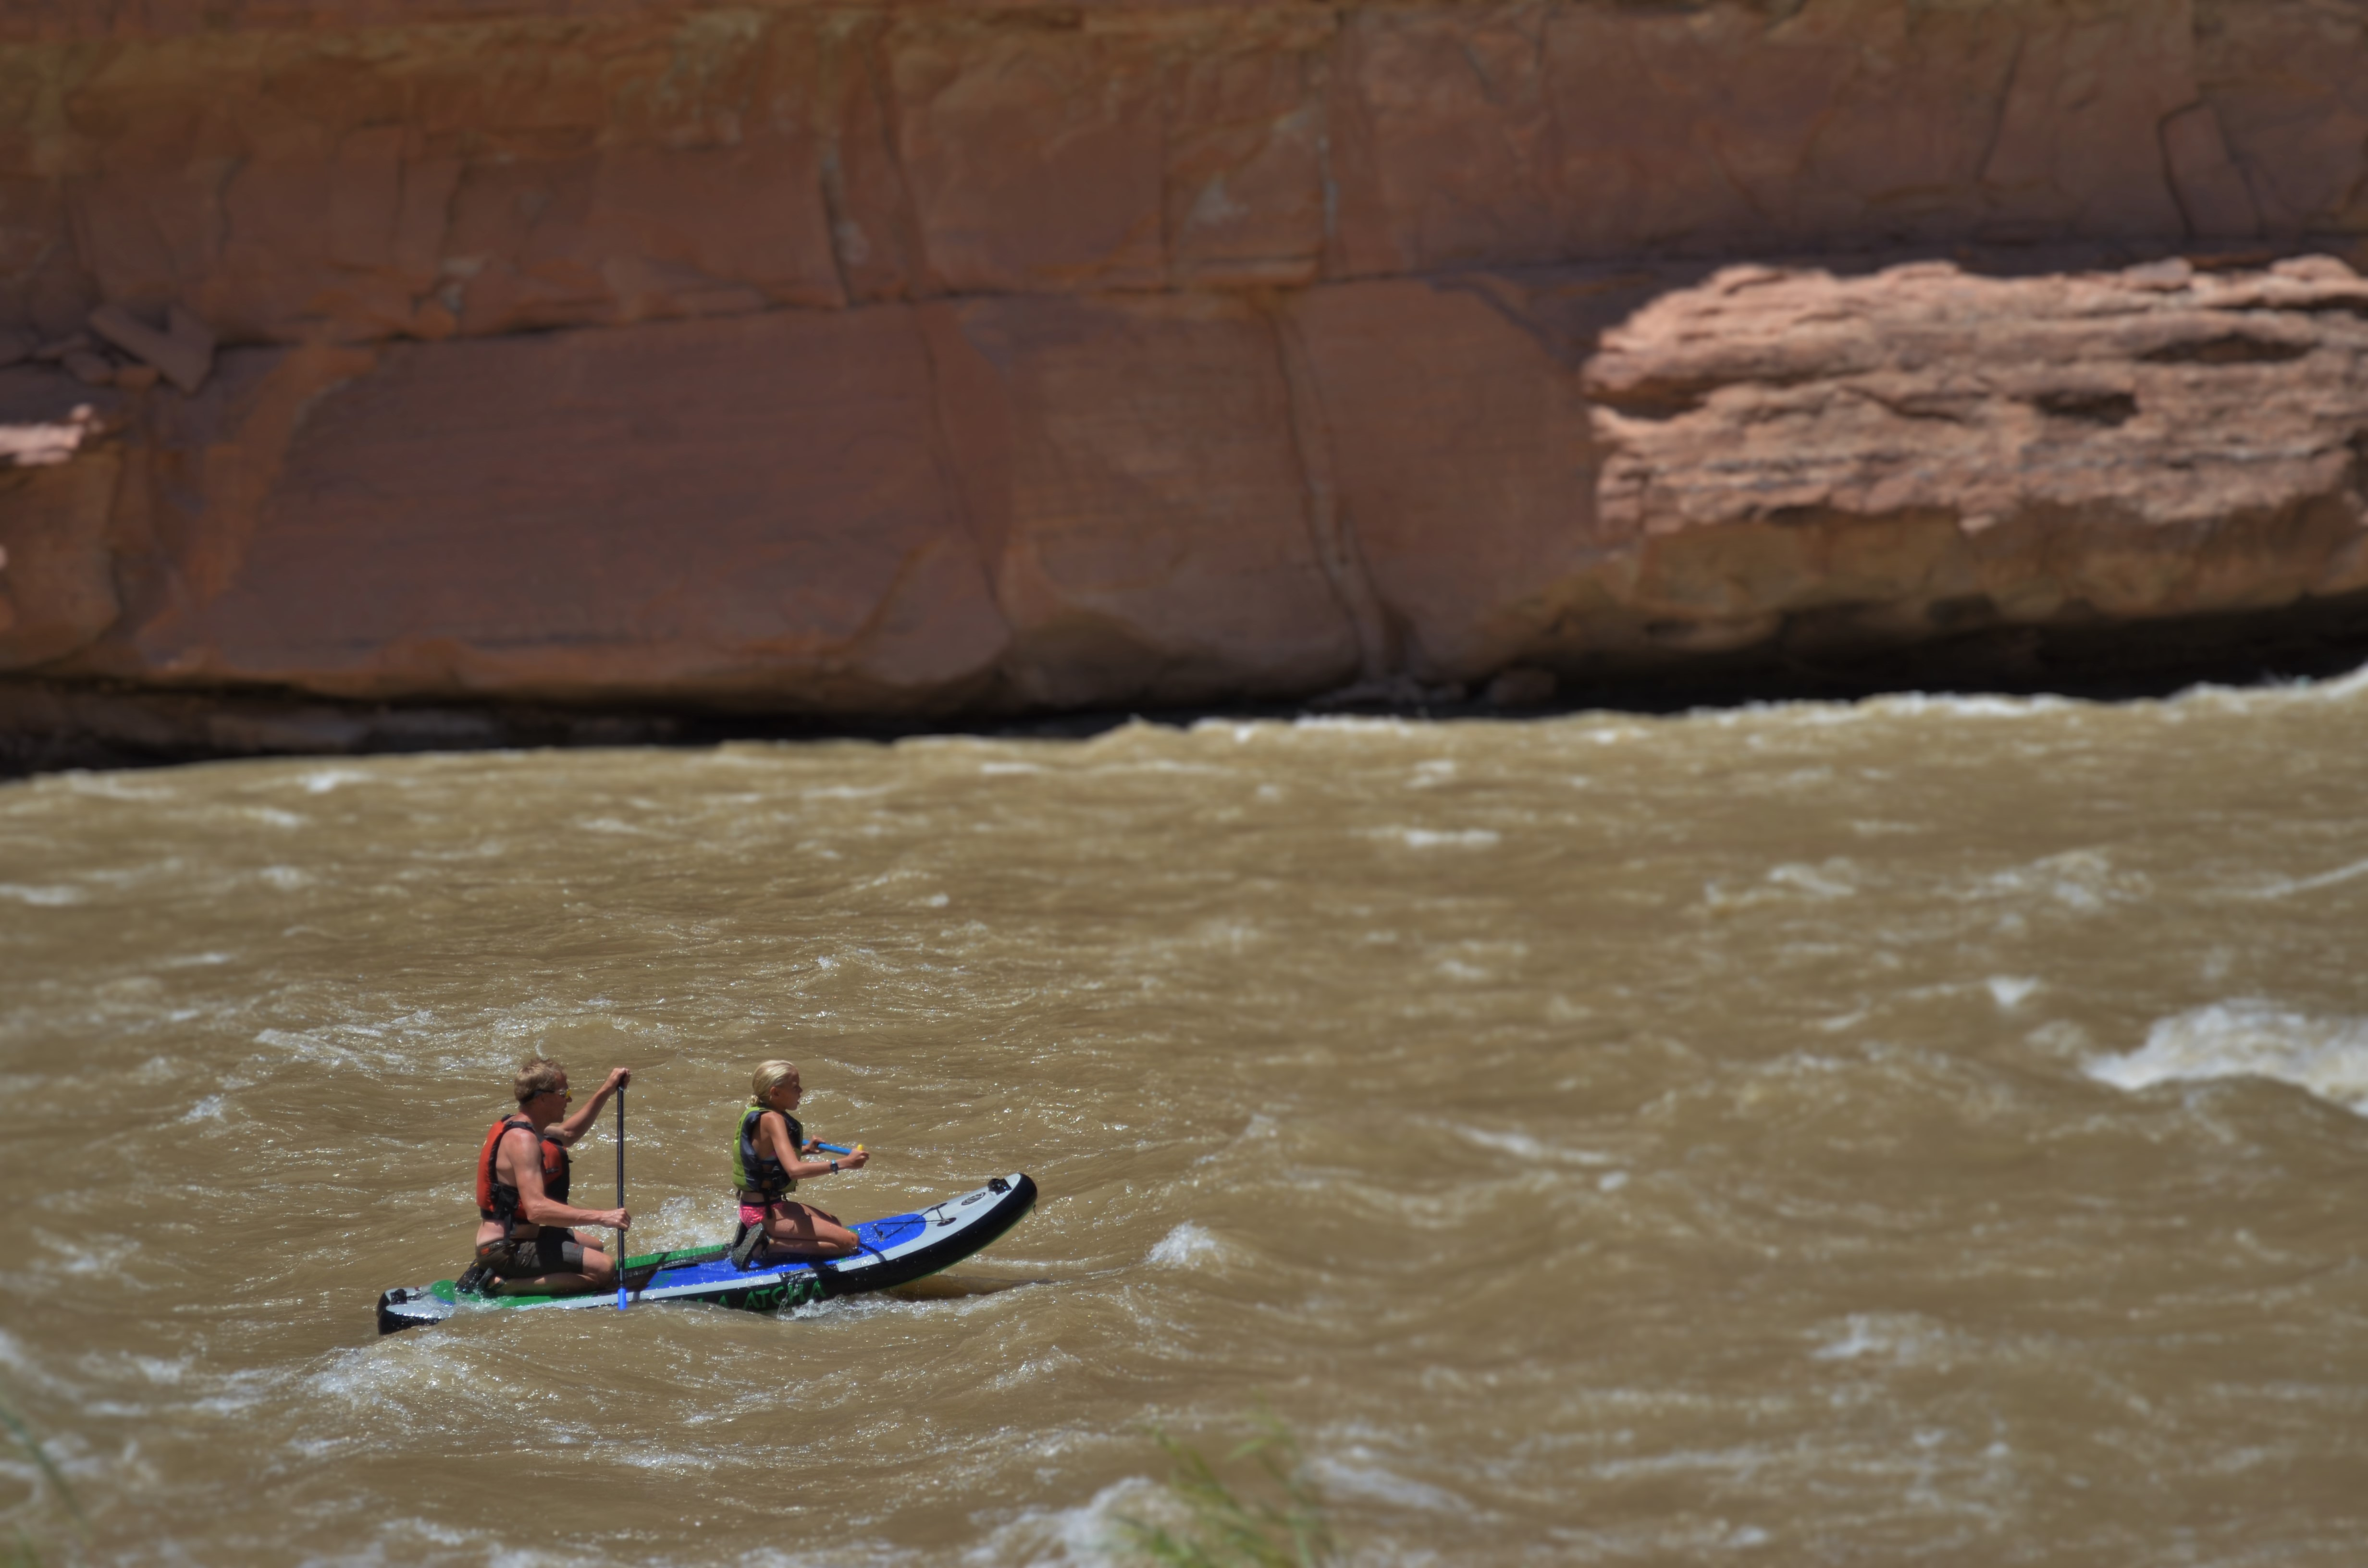 Paddleboarding the San Juan River during a family vacation